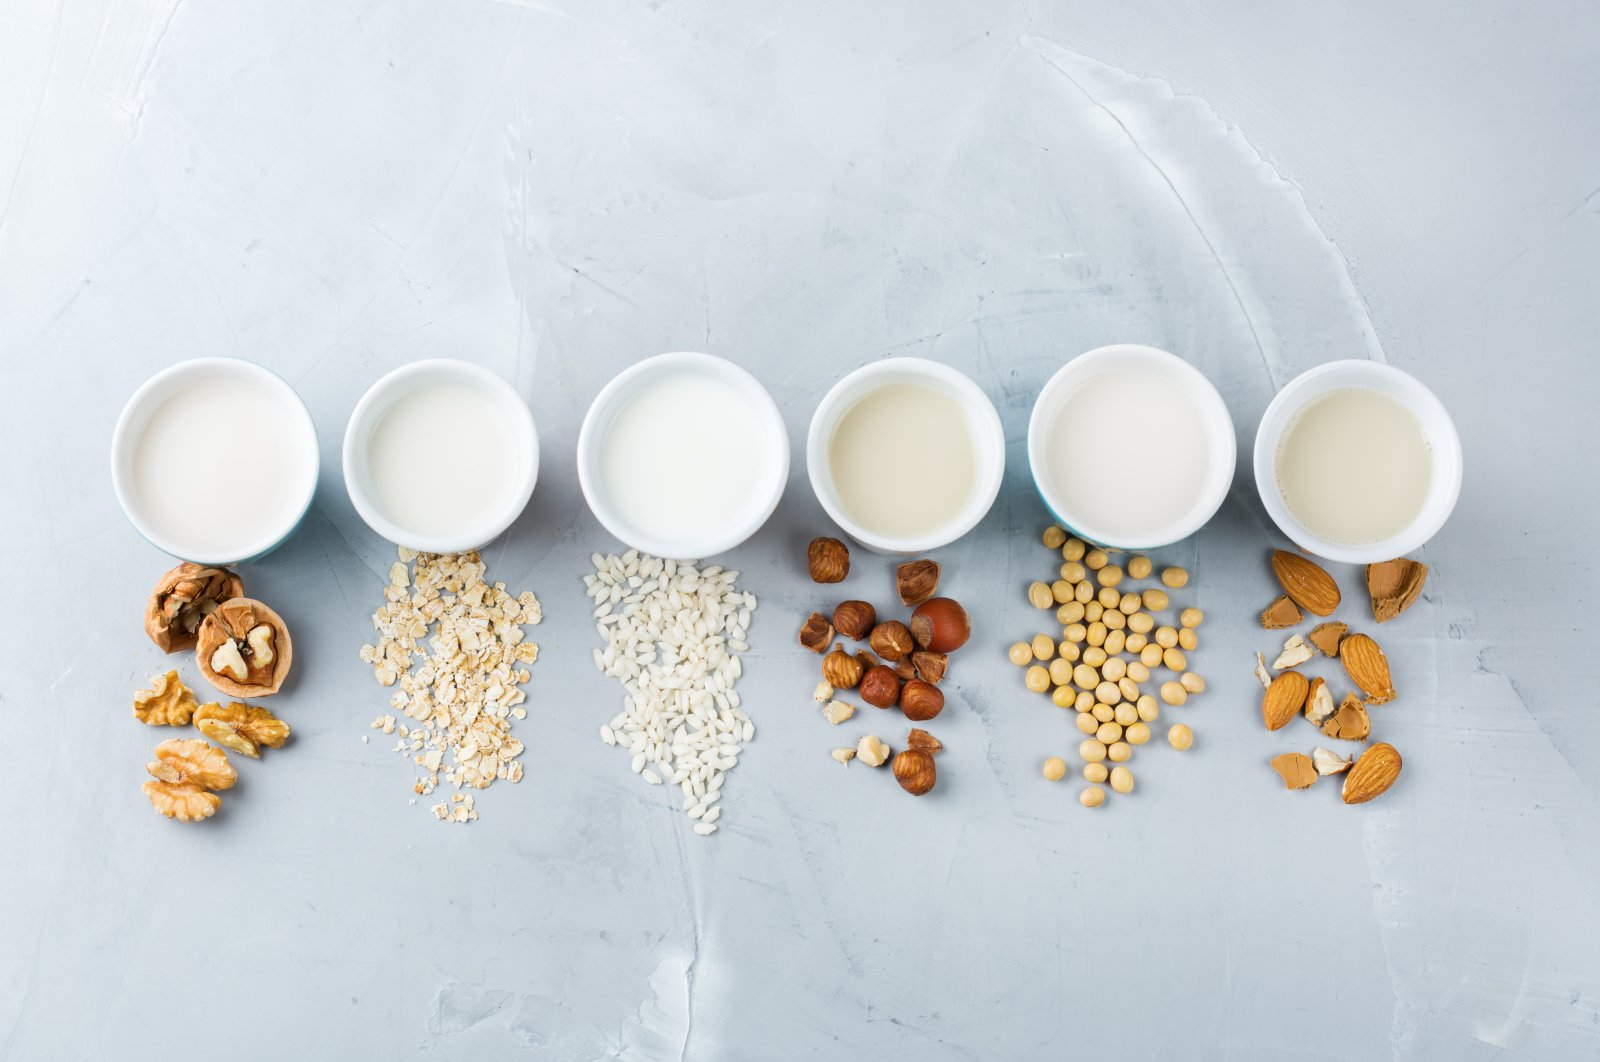 Plant-based dairy alternatives have become mainstream in many countries. (Shutterstock Photo)